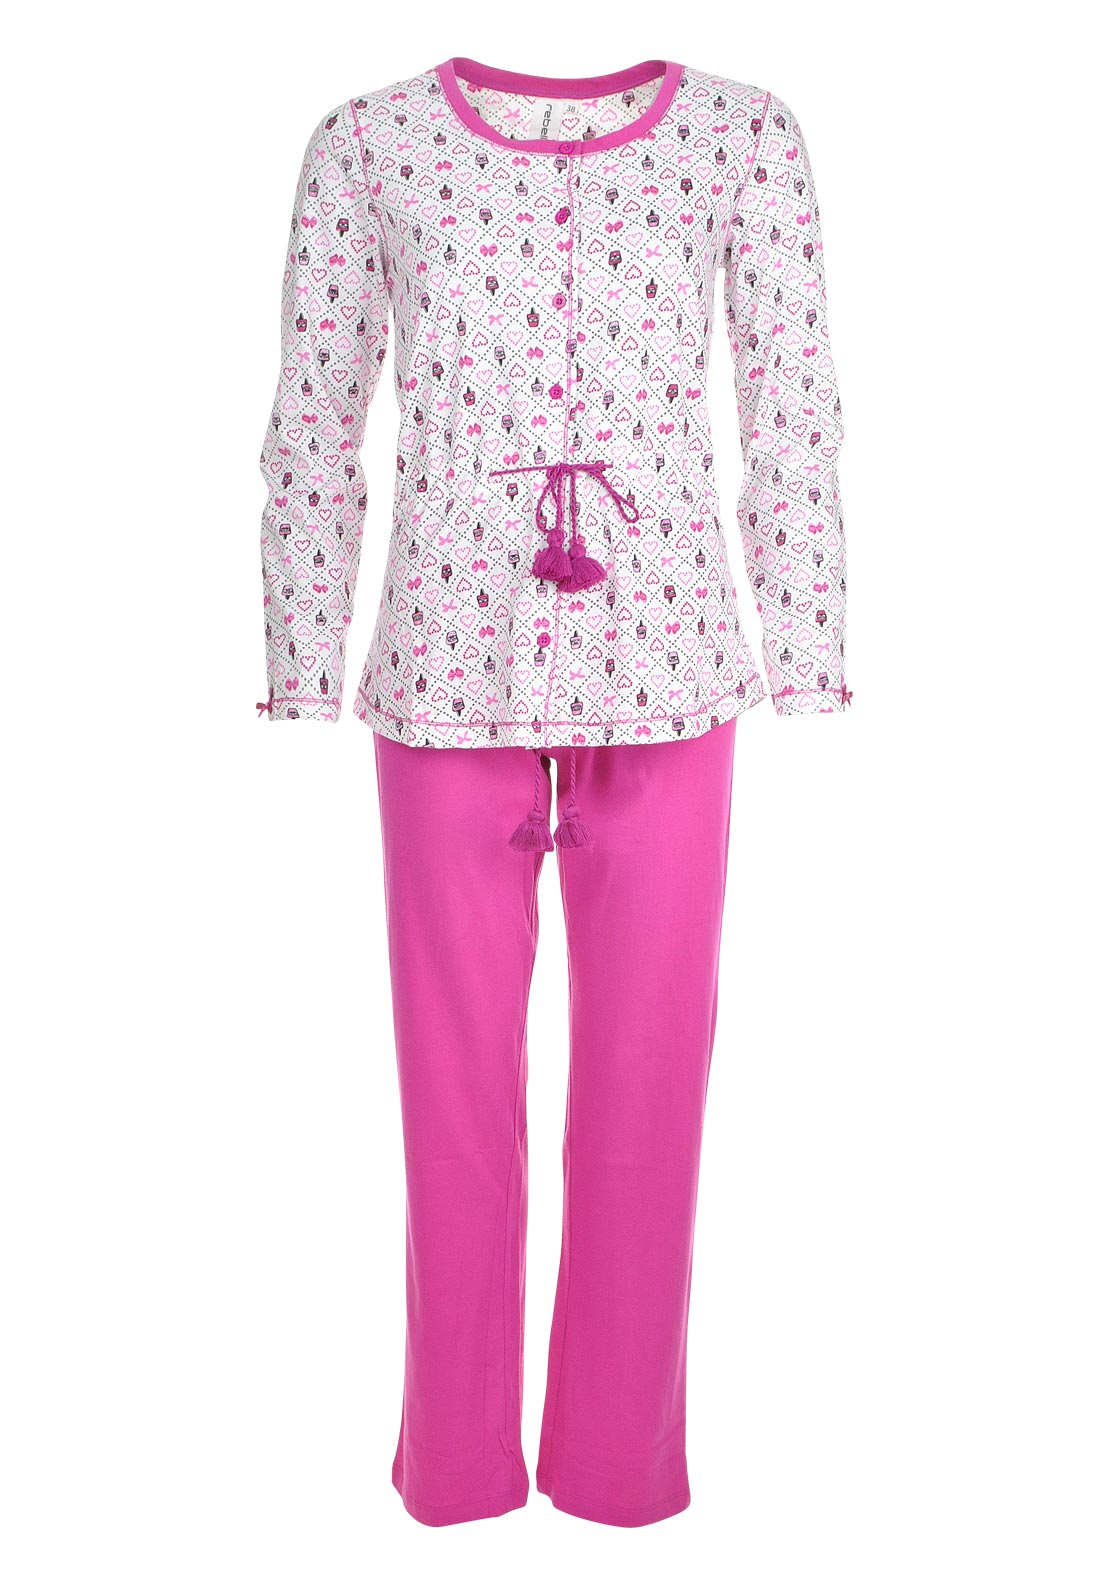 Rebelle Beauty Treats Print Tassel Waist Pyjama Set, Pink and White